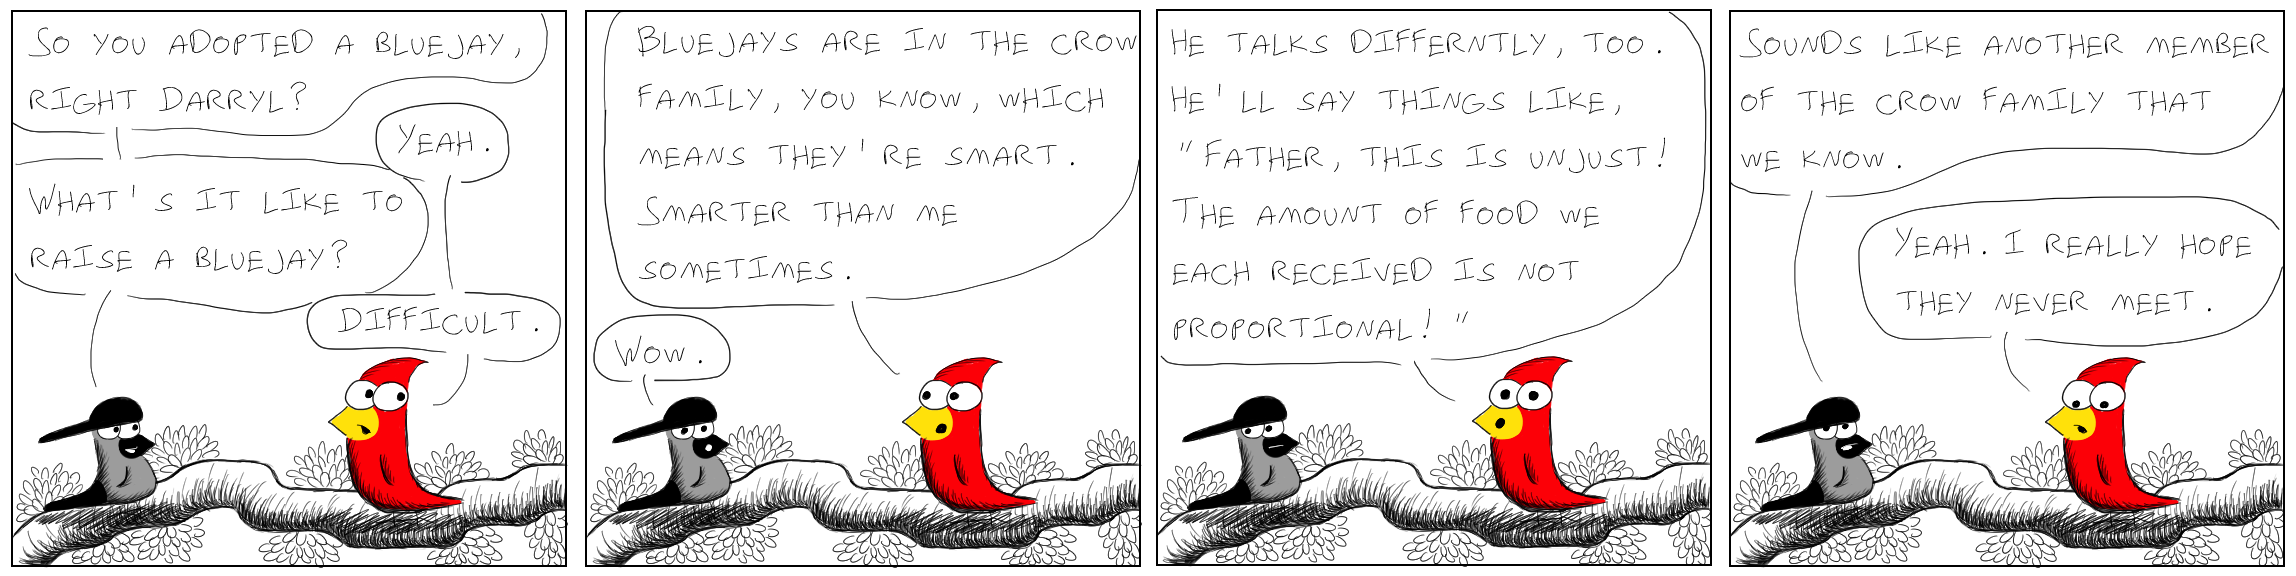 Warning: Getting this joke requires prior knowledge of The Bird Feeder's cast of characters.